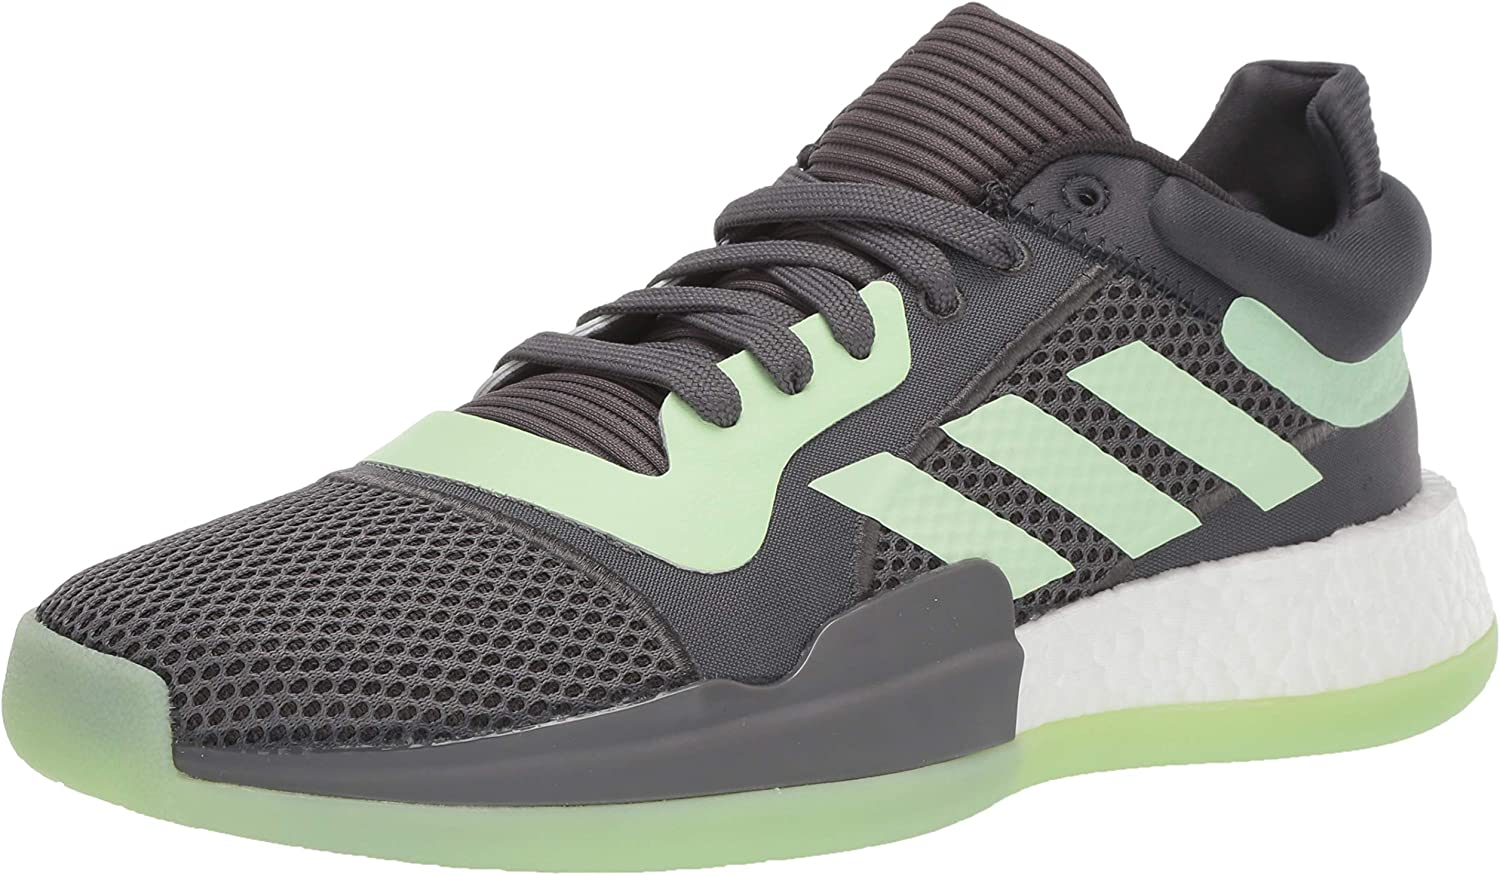 Adidas - Marquee Boost Low Uomo